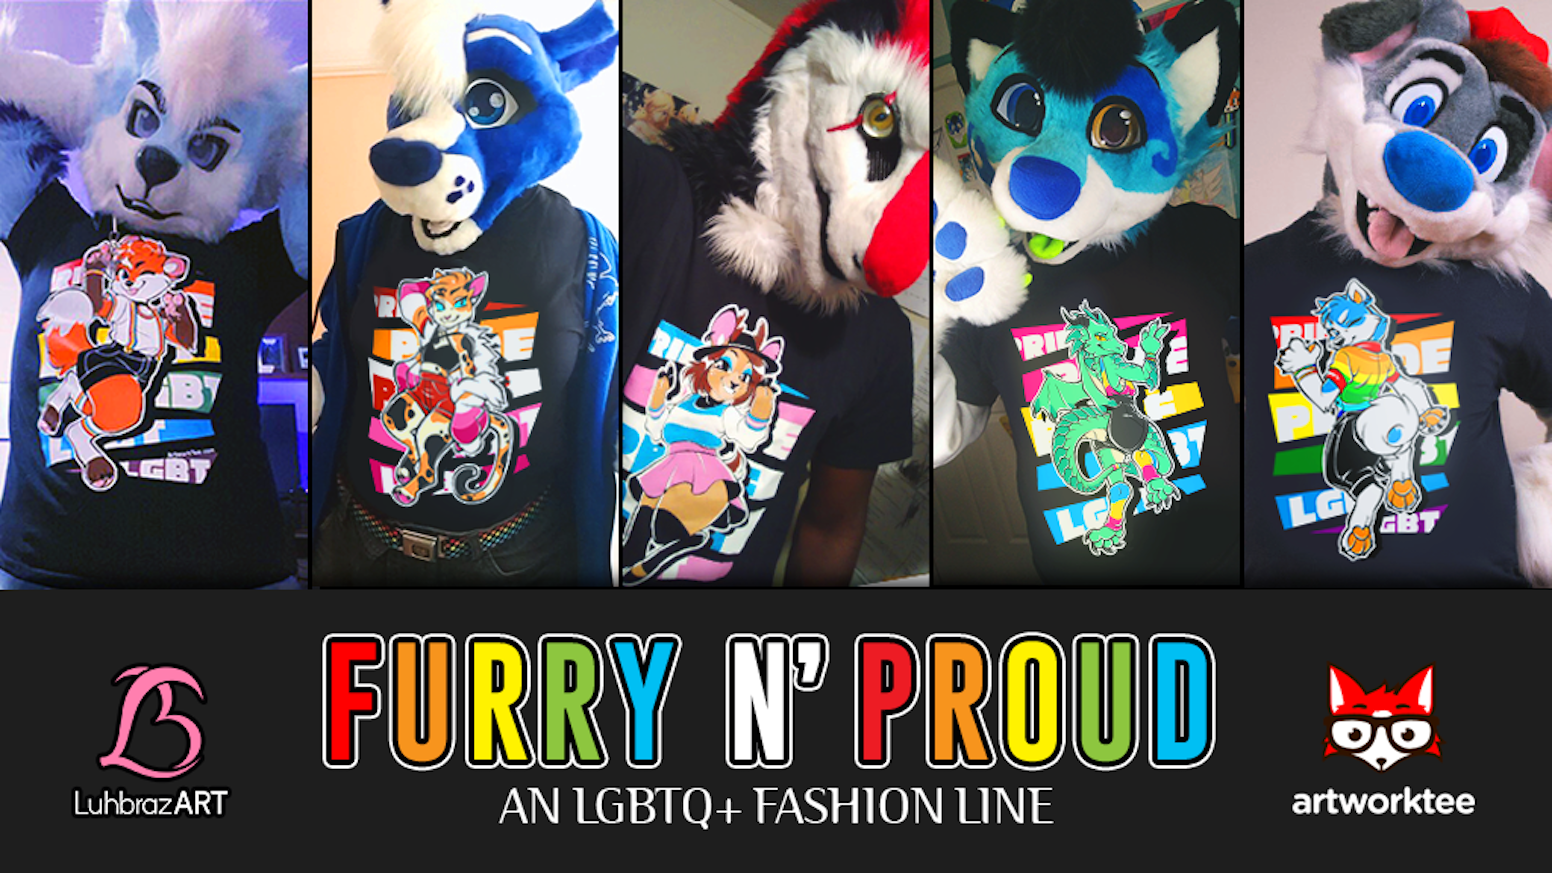 Show your furry pride with ArtworkTee's new line of LGBT+ shirts!